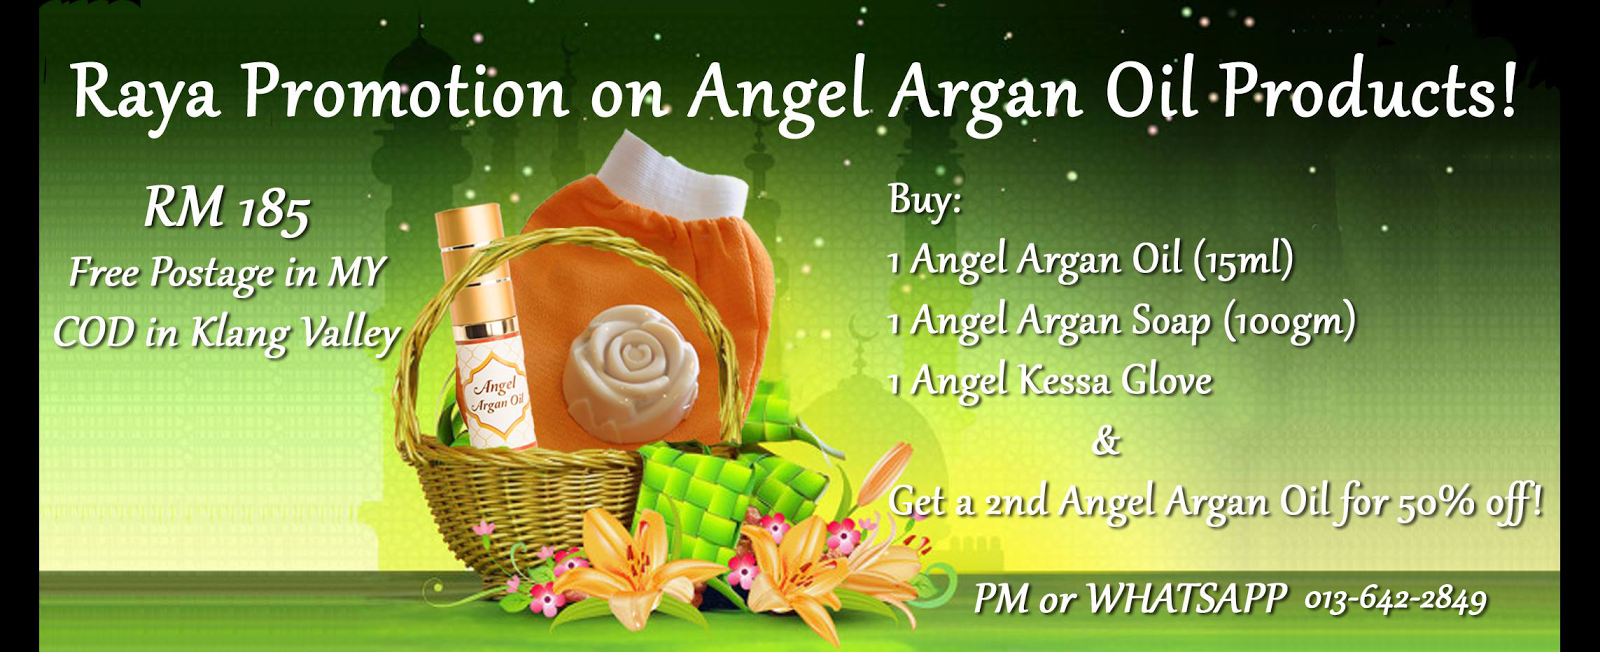 Angel Raya 2014 Promotion